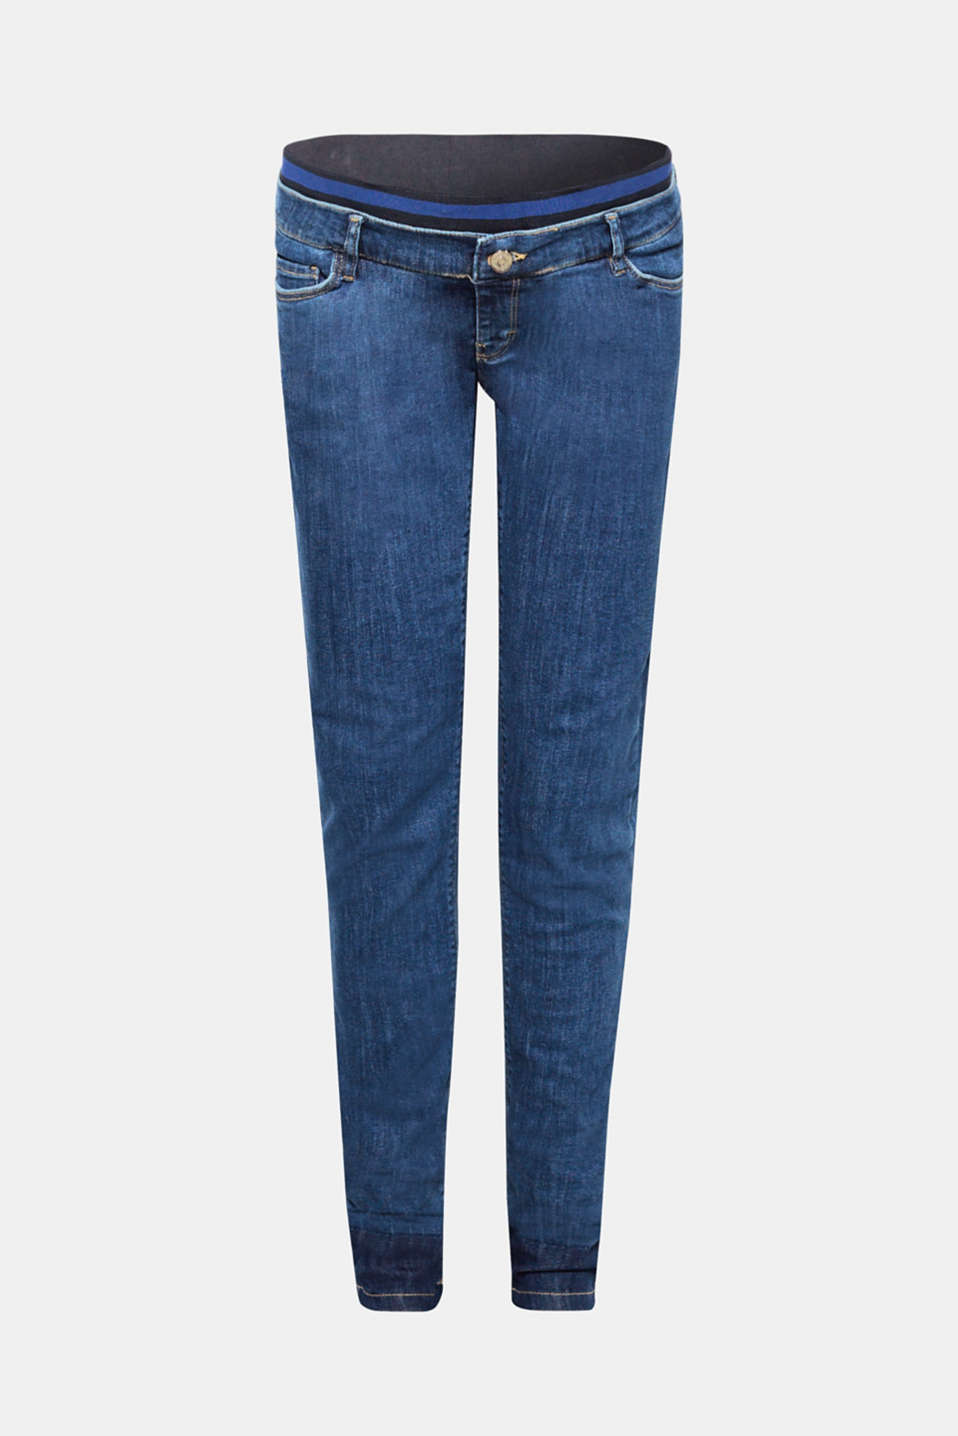 The sporty, striped under-bump waistband and the leg hems that look like they've been unpicked give these stretch jeans their trendy new look!